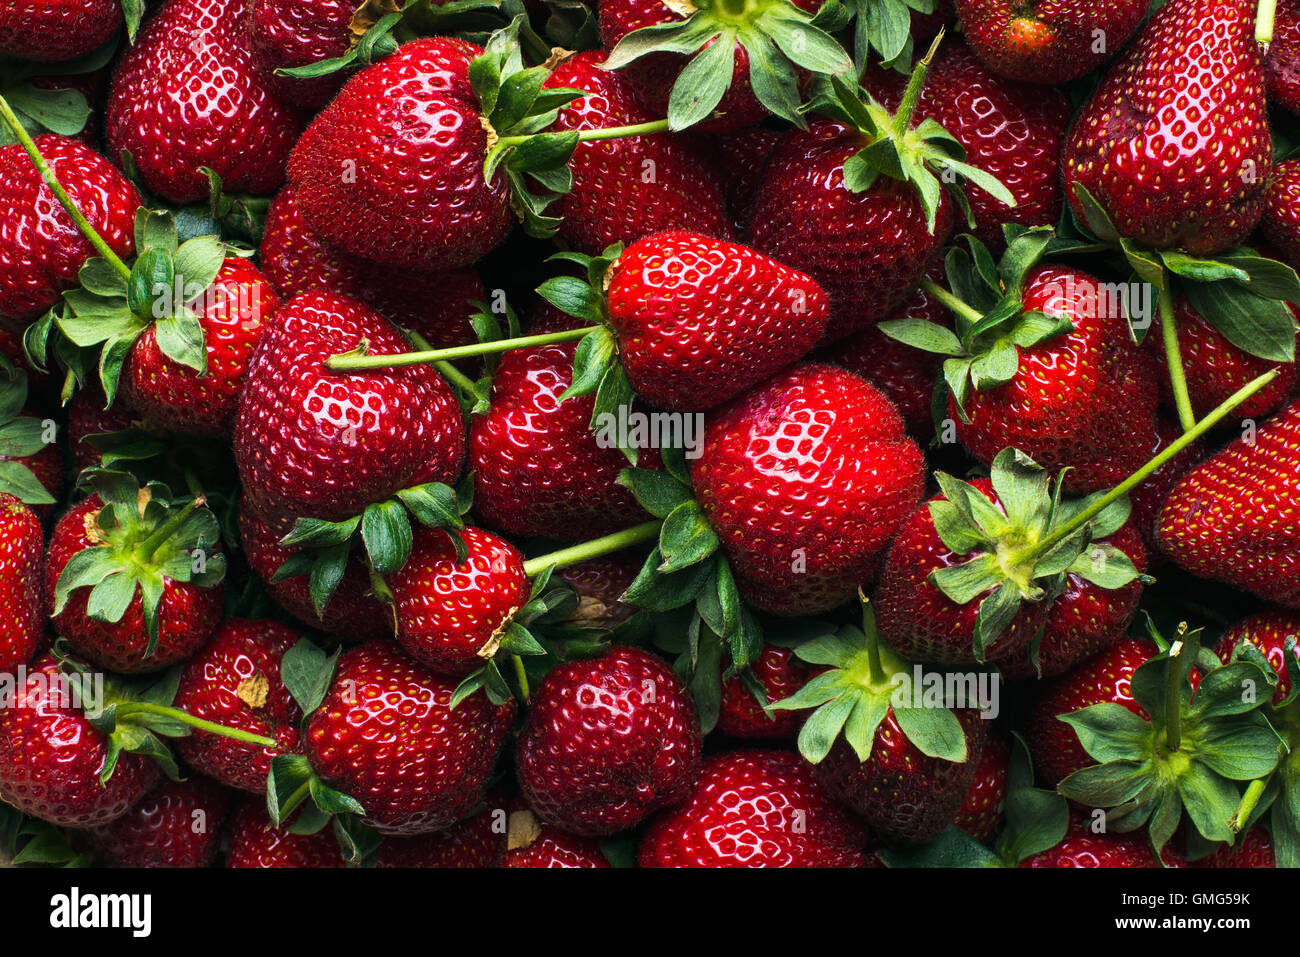 Freshly harvested ripe strawberries, top view - Stock Image